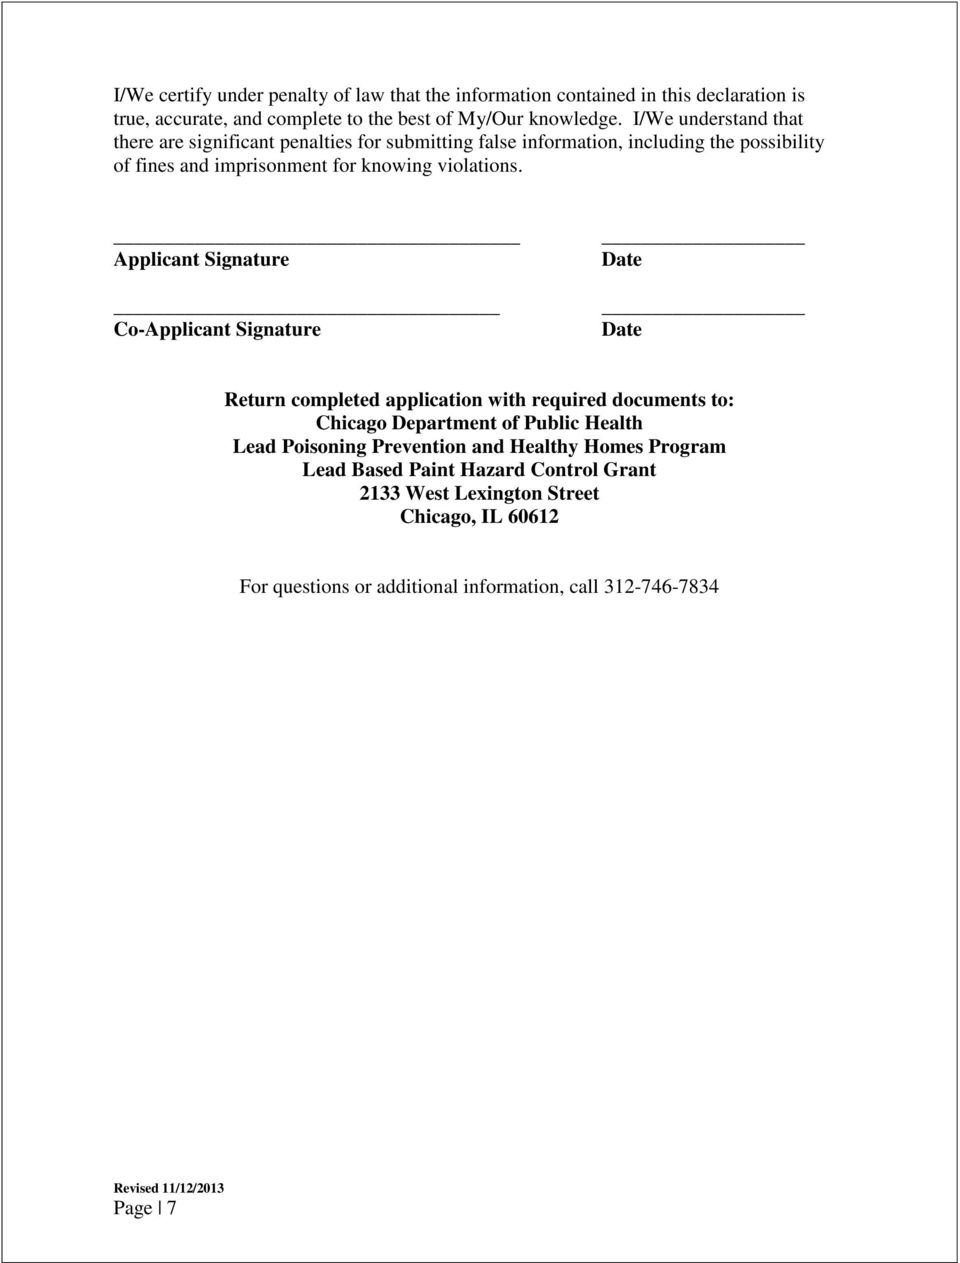 Applicant Signature Co-Applicant Signature Date Date Return completed application with required documents to: Chicago Department of Public Health Lead Poisoning